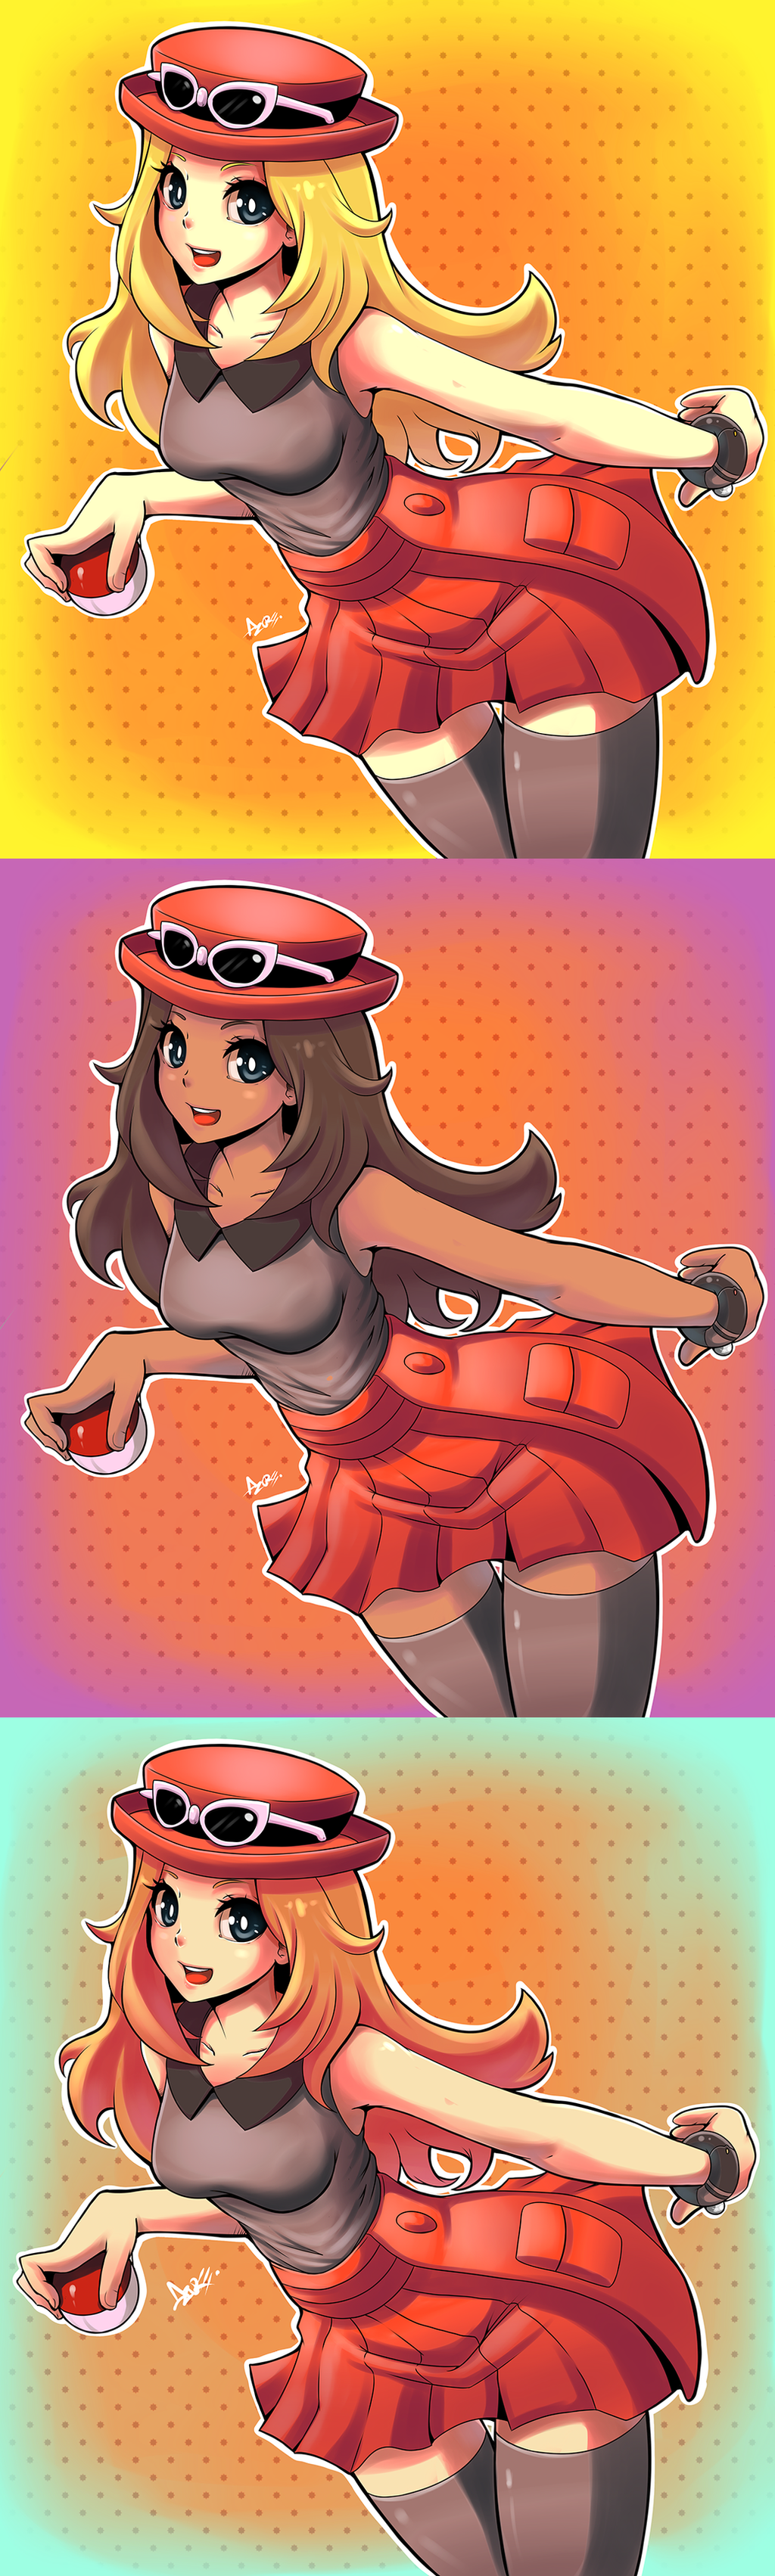 Pokemon XY female trainer by AzureBladeXIII